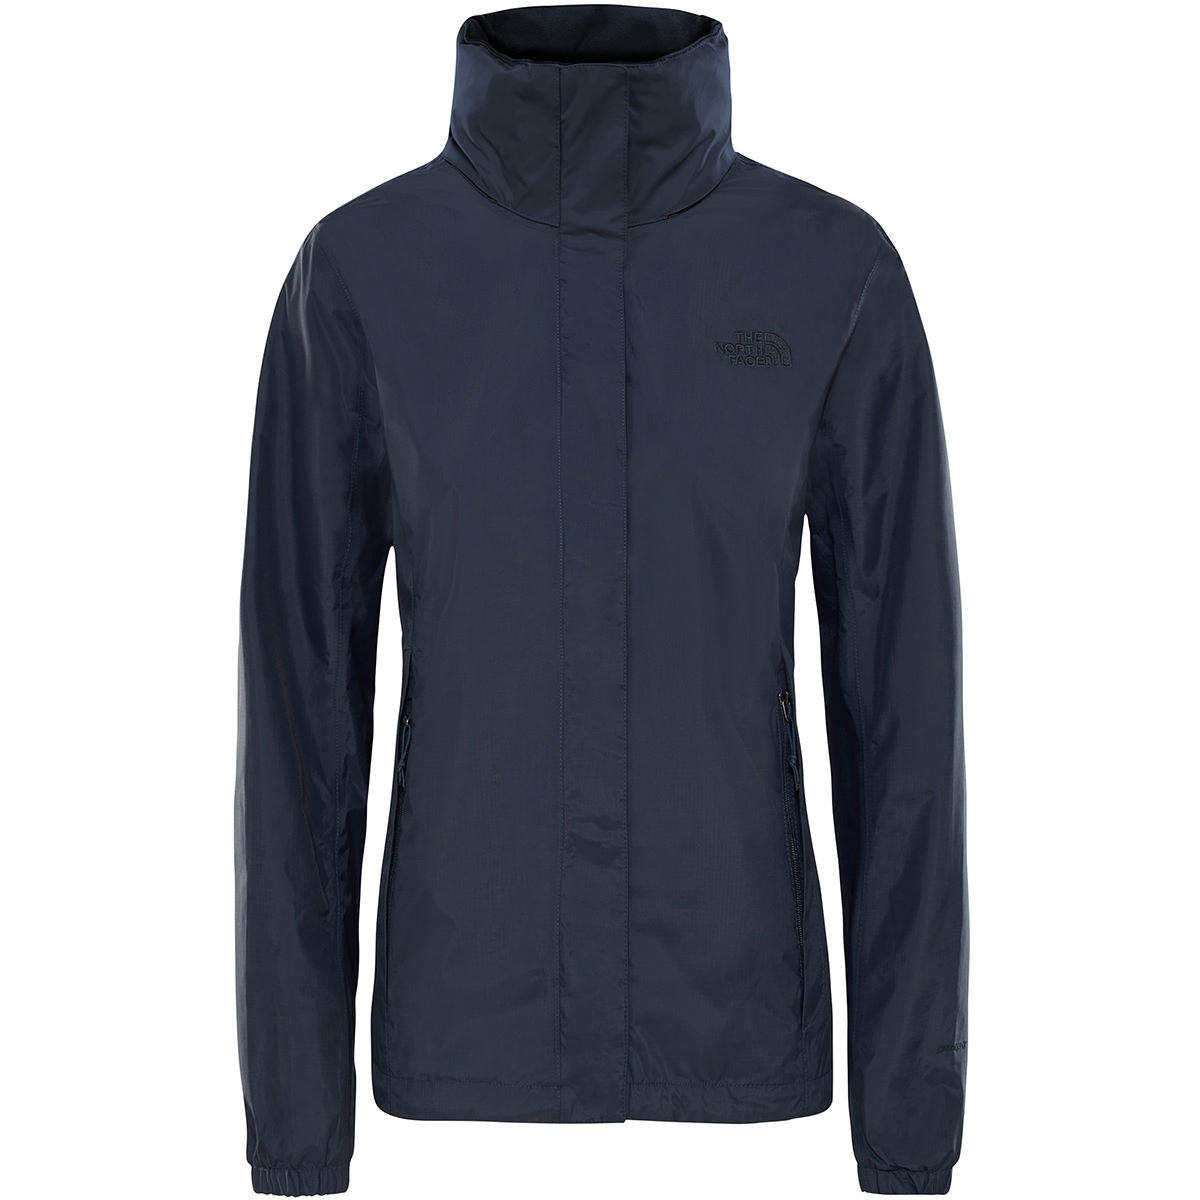 The North Face The North Face Womens Resolve 2 Jacket   Jackets